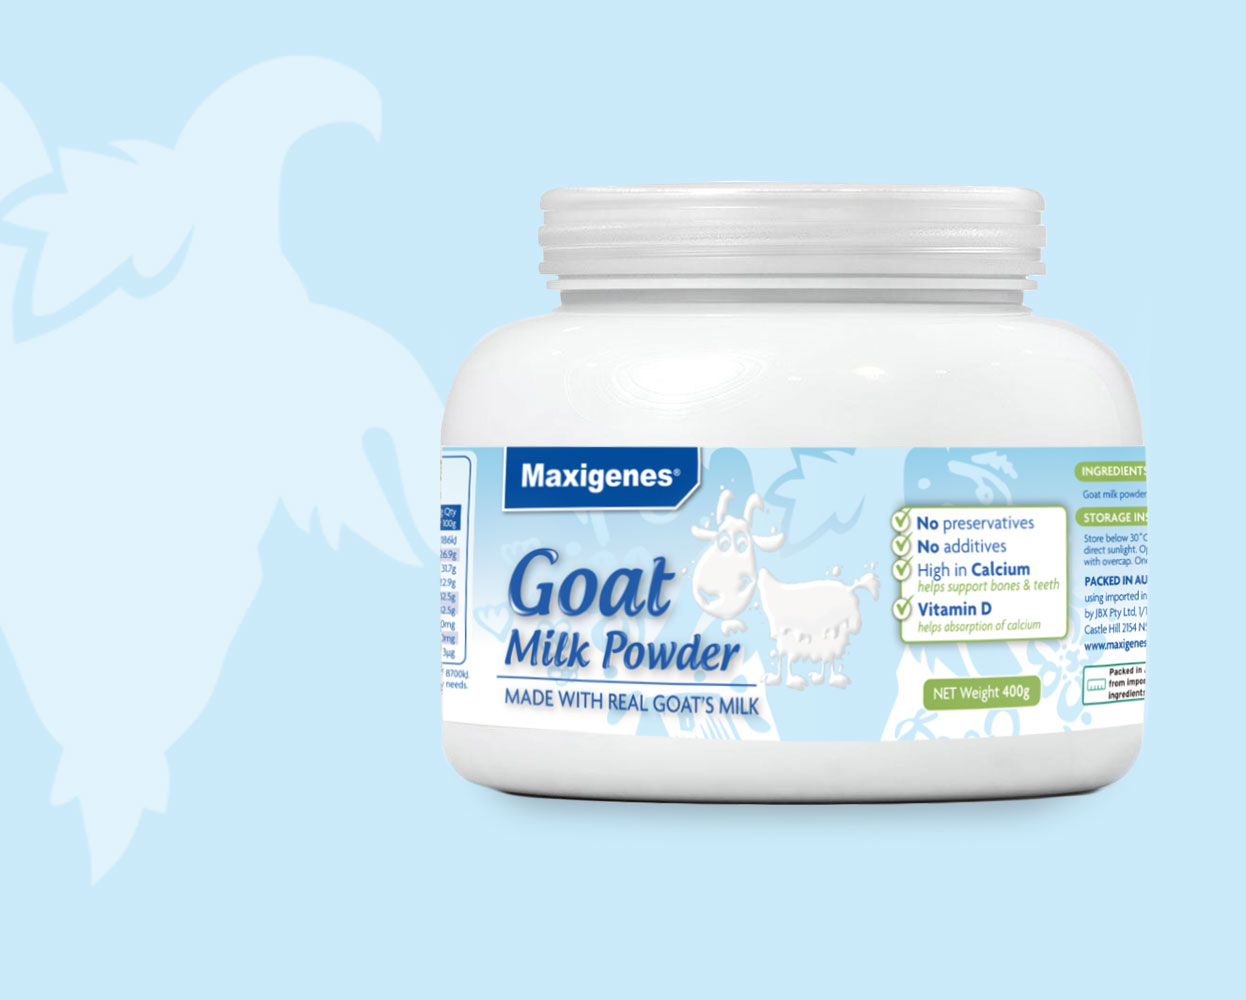 Maxigenes Goat Milk Powder Packaging